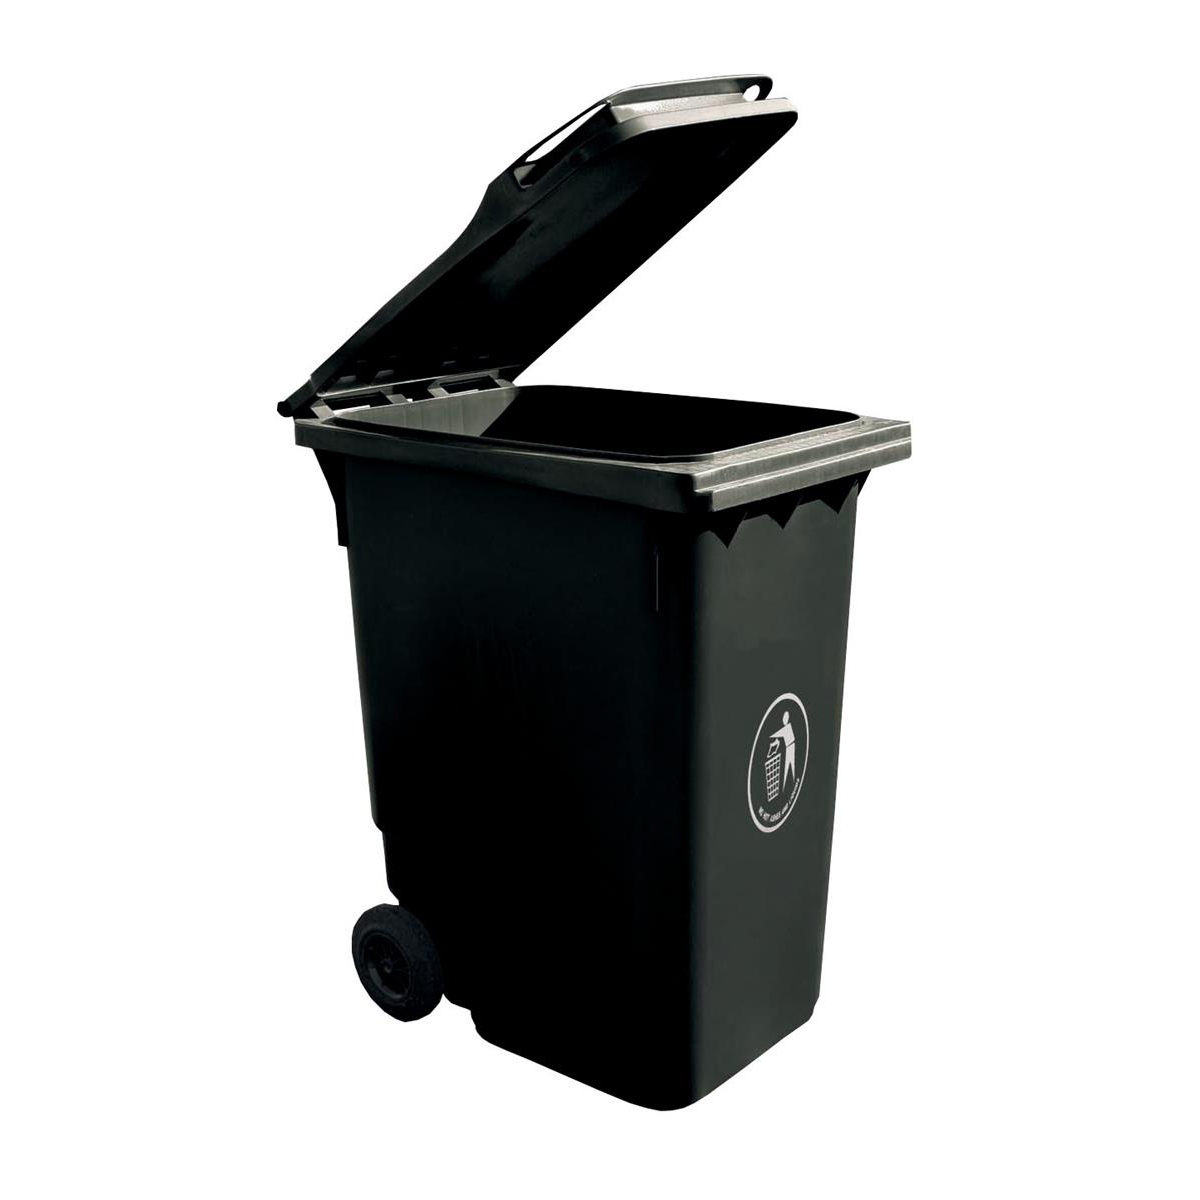 Wheelie Bin High Density Polyethylene with Rear Wheels 240 Litre Capacity 580x740x1070mm Grey